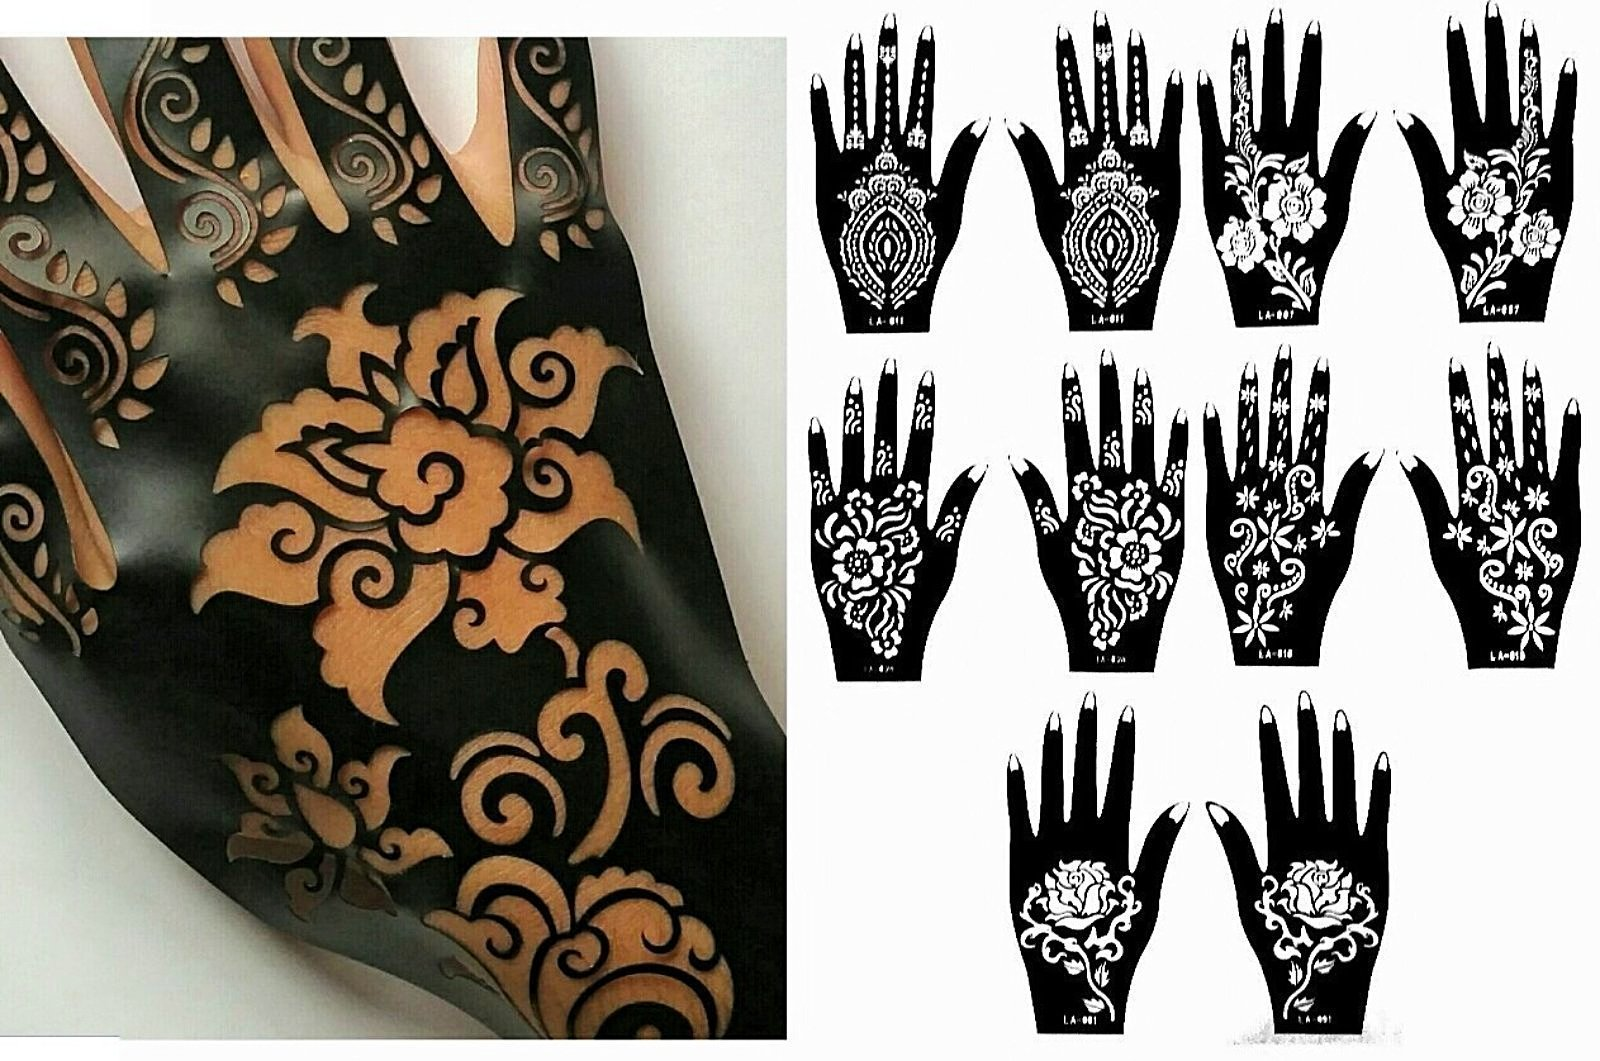 Henna Stencil Tattoo (10 Sheets) Self-Adhesive Beautiful Body Art Designs - Temporary Tattoo Templates by Gilded Girl